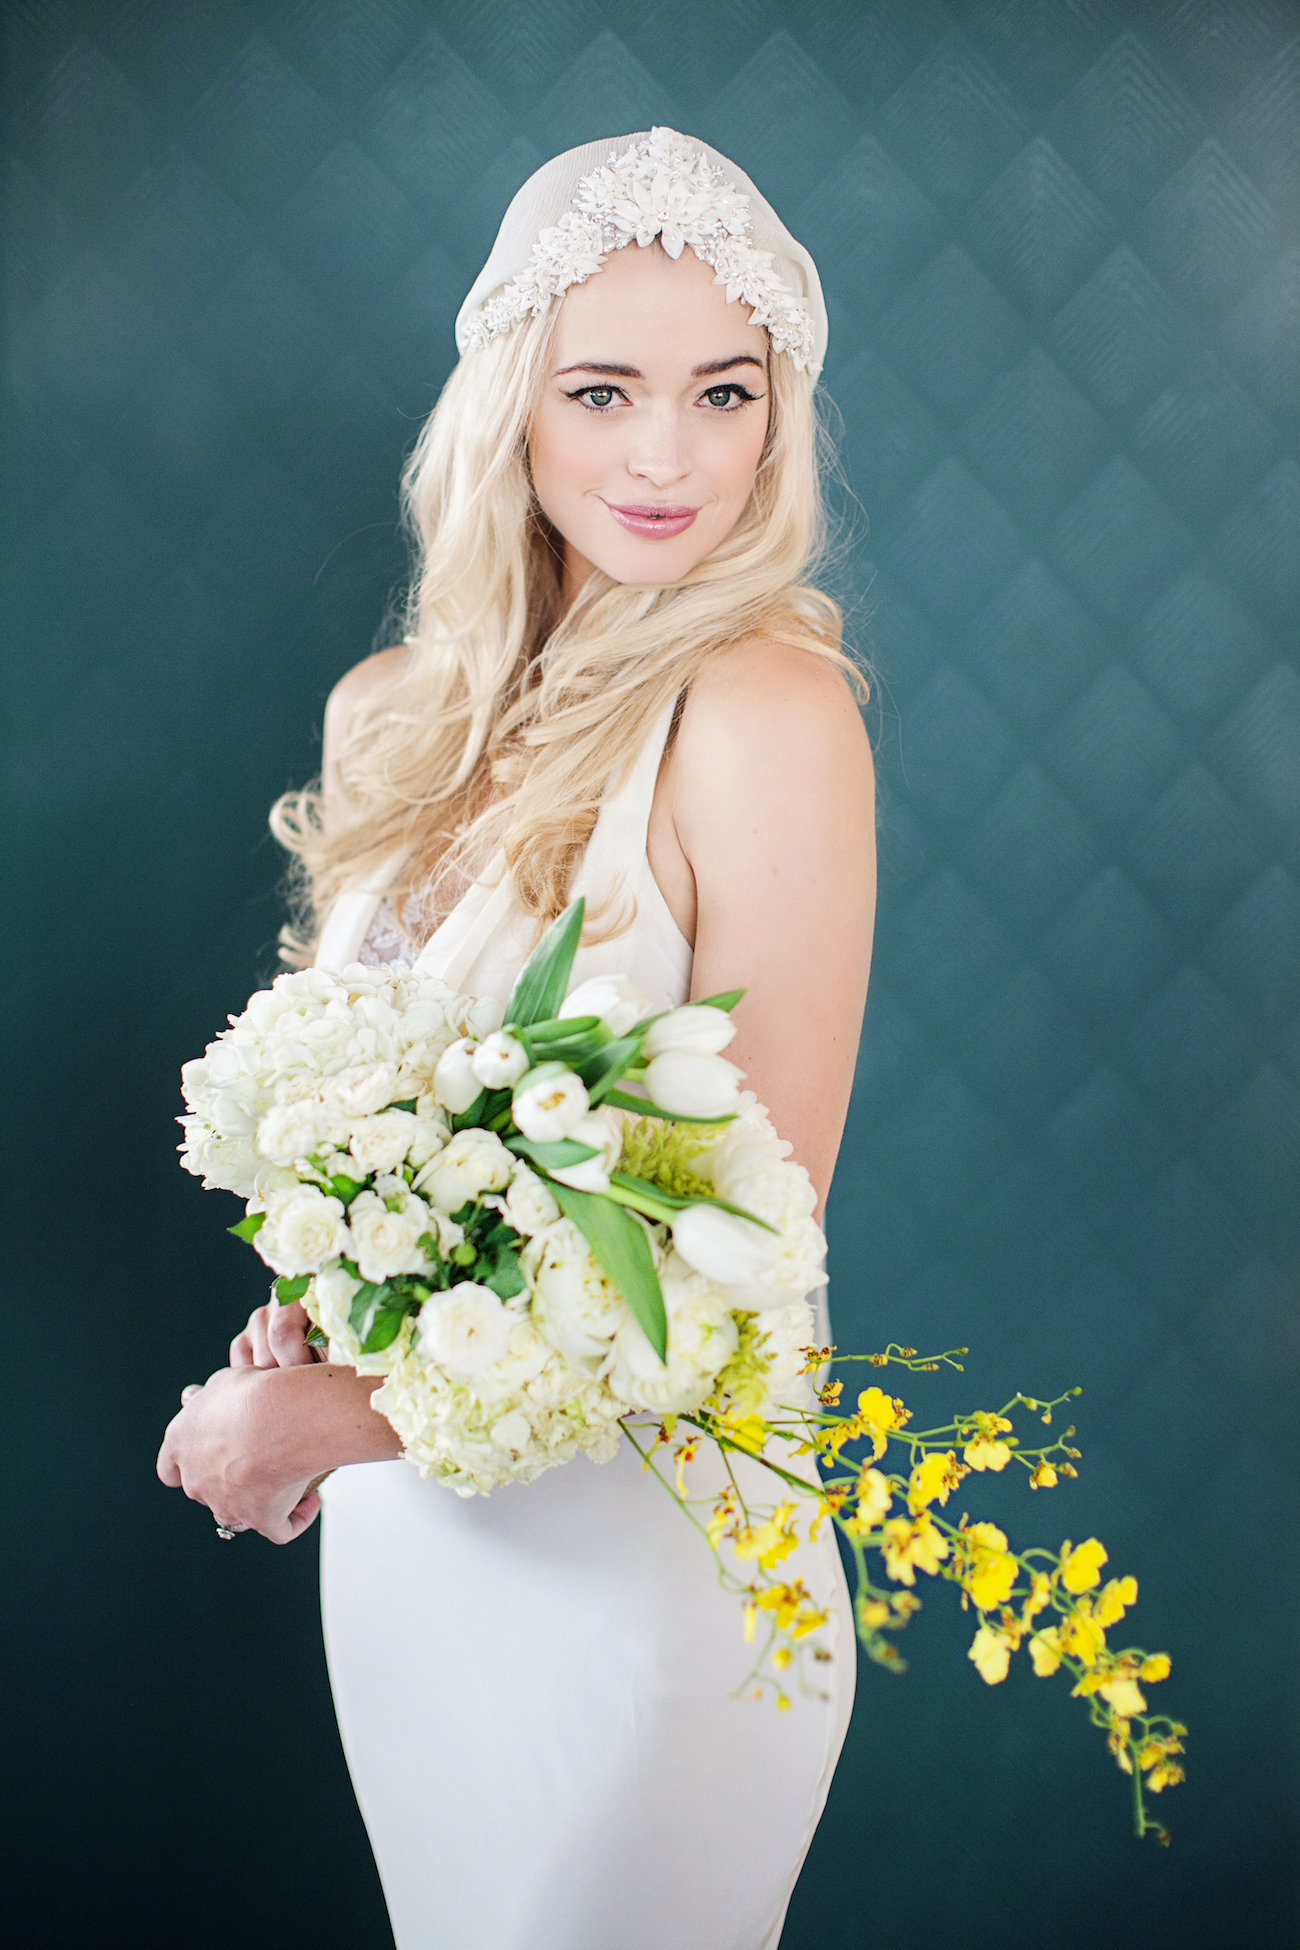 Bohemian Bride with Bright Bouquet   Credit: Wedding Concepts & Tyme Photography